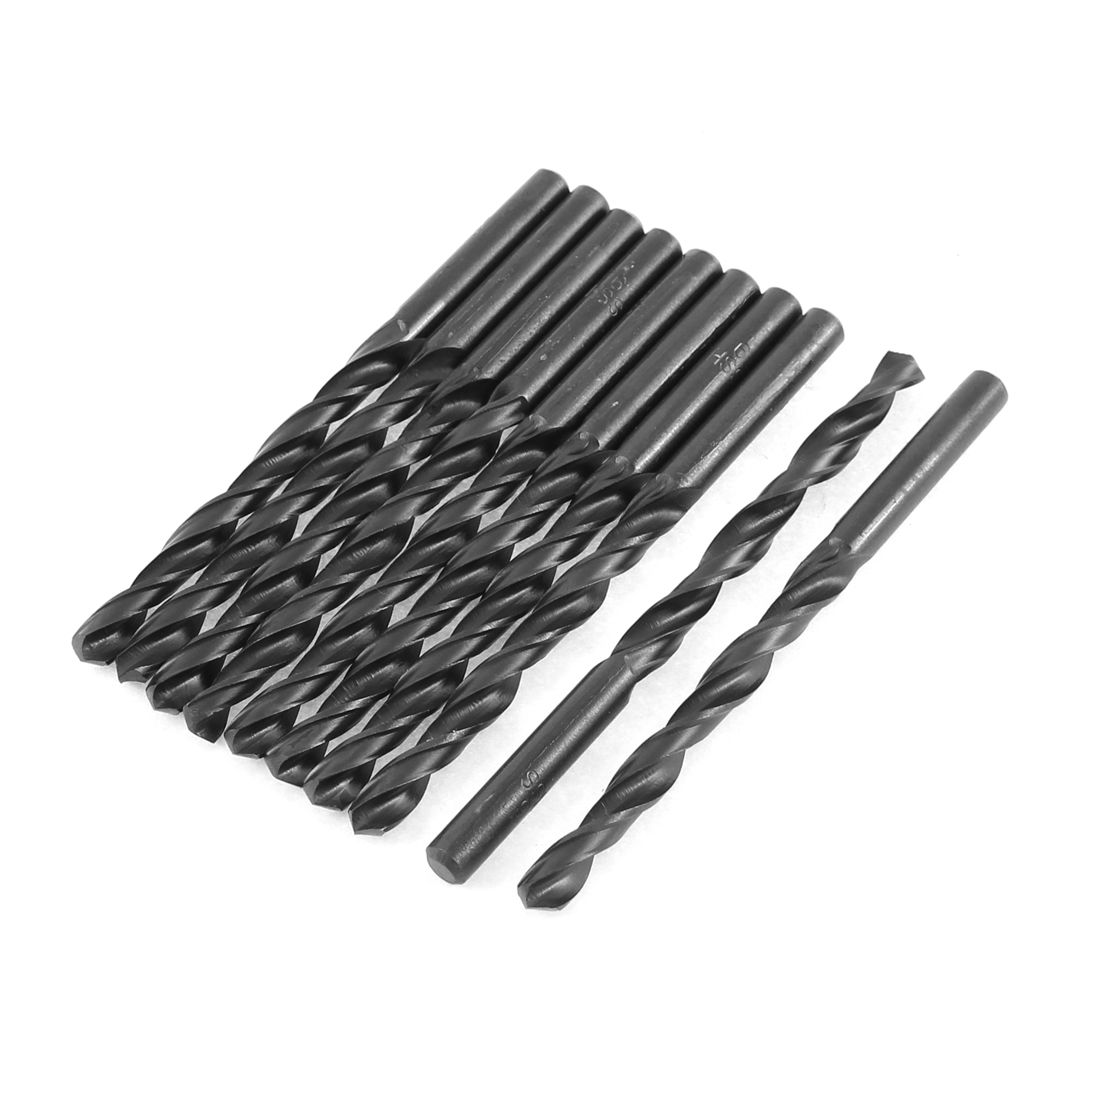 Подробнее о Uxcell 10Pcs 6Mm 7Mm 8Mm Cutting Dia 90Mm Length Hss Straight Shank Twist Drill Bit Black Length . | 101mm | 102mm | 106mm | uxcell hss 30mm diameter iron cutting twist drill bit hole saw 65mm length